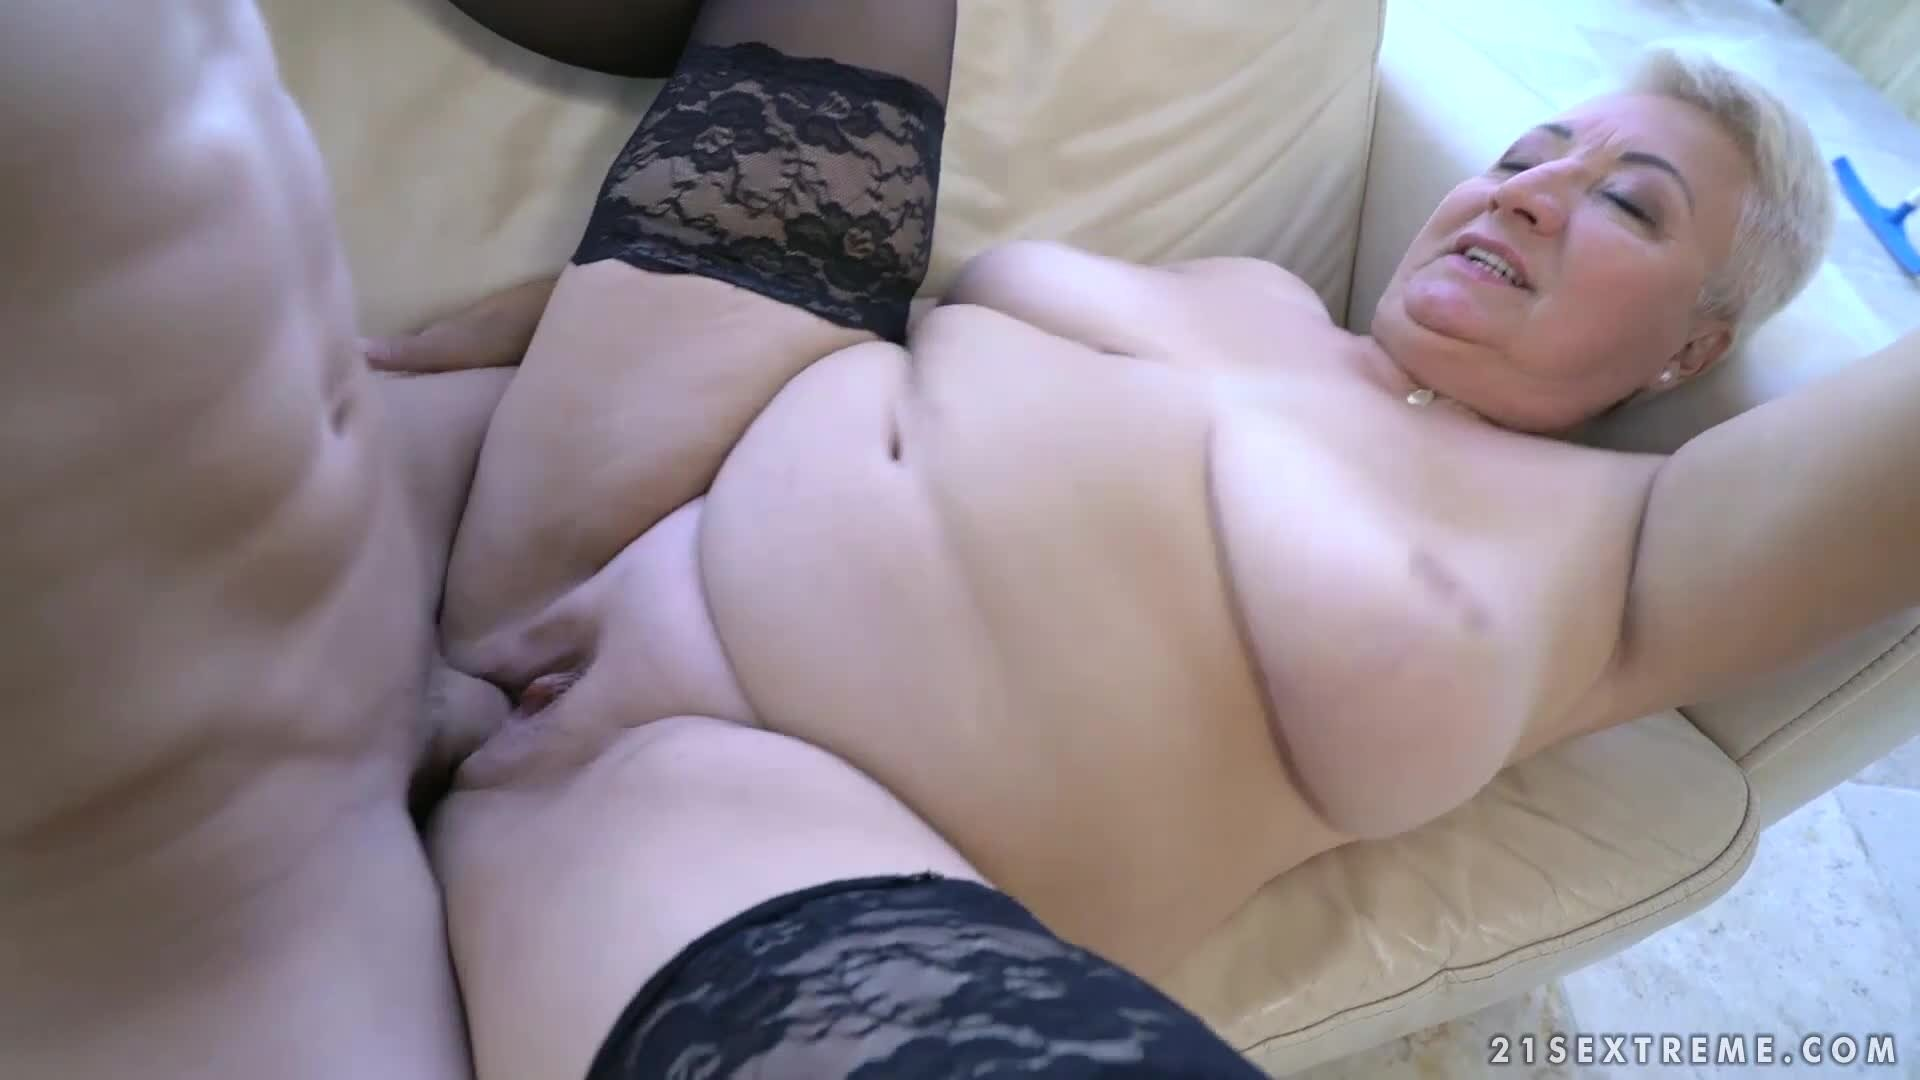 pics of sexy lips woman on cock